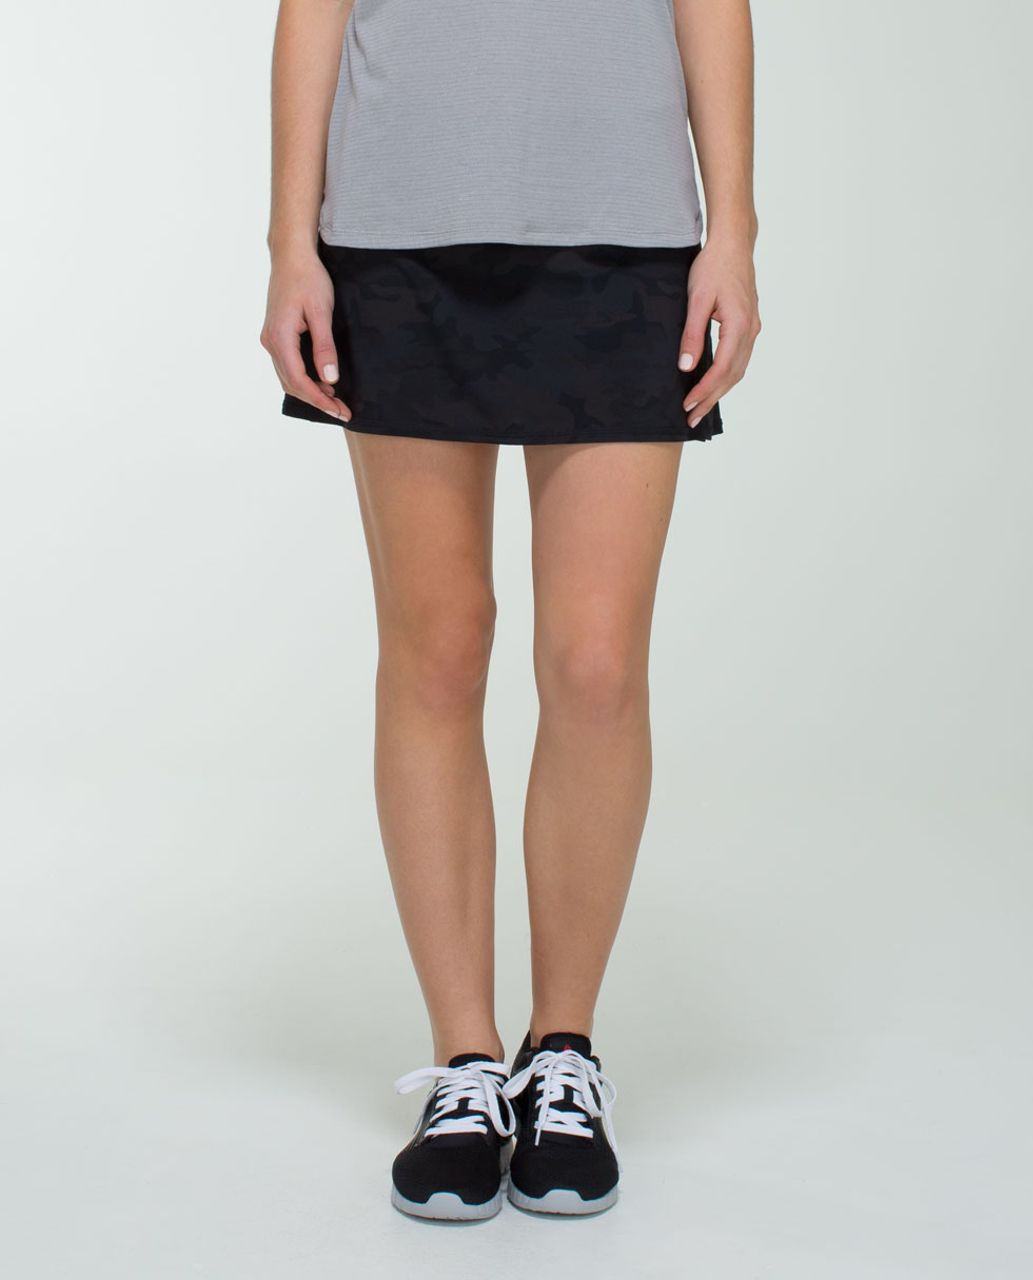 Lululemon Run:  Pace Setter Skirt (Regular) *4-way Stretch - Savasana Camo 20cm New Black / Black